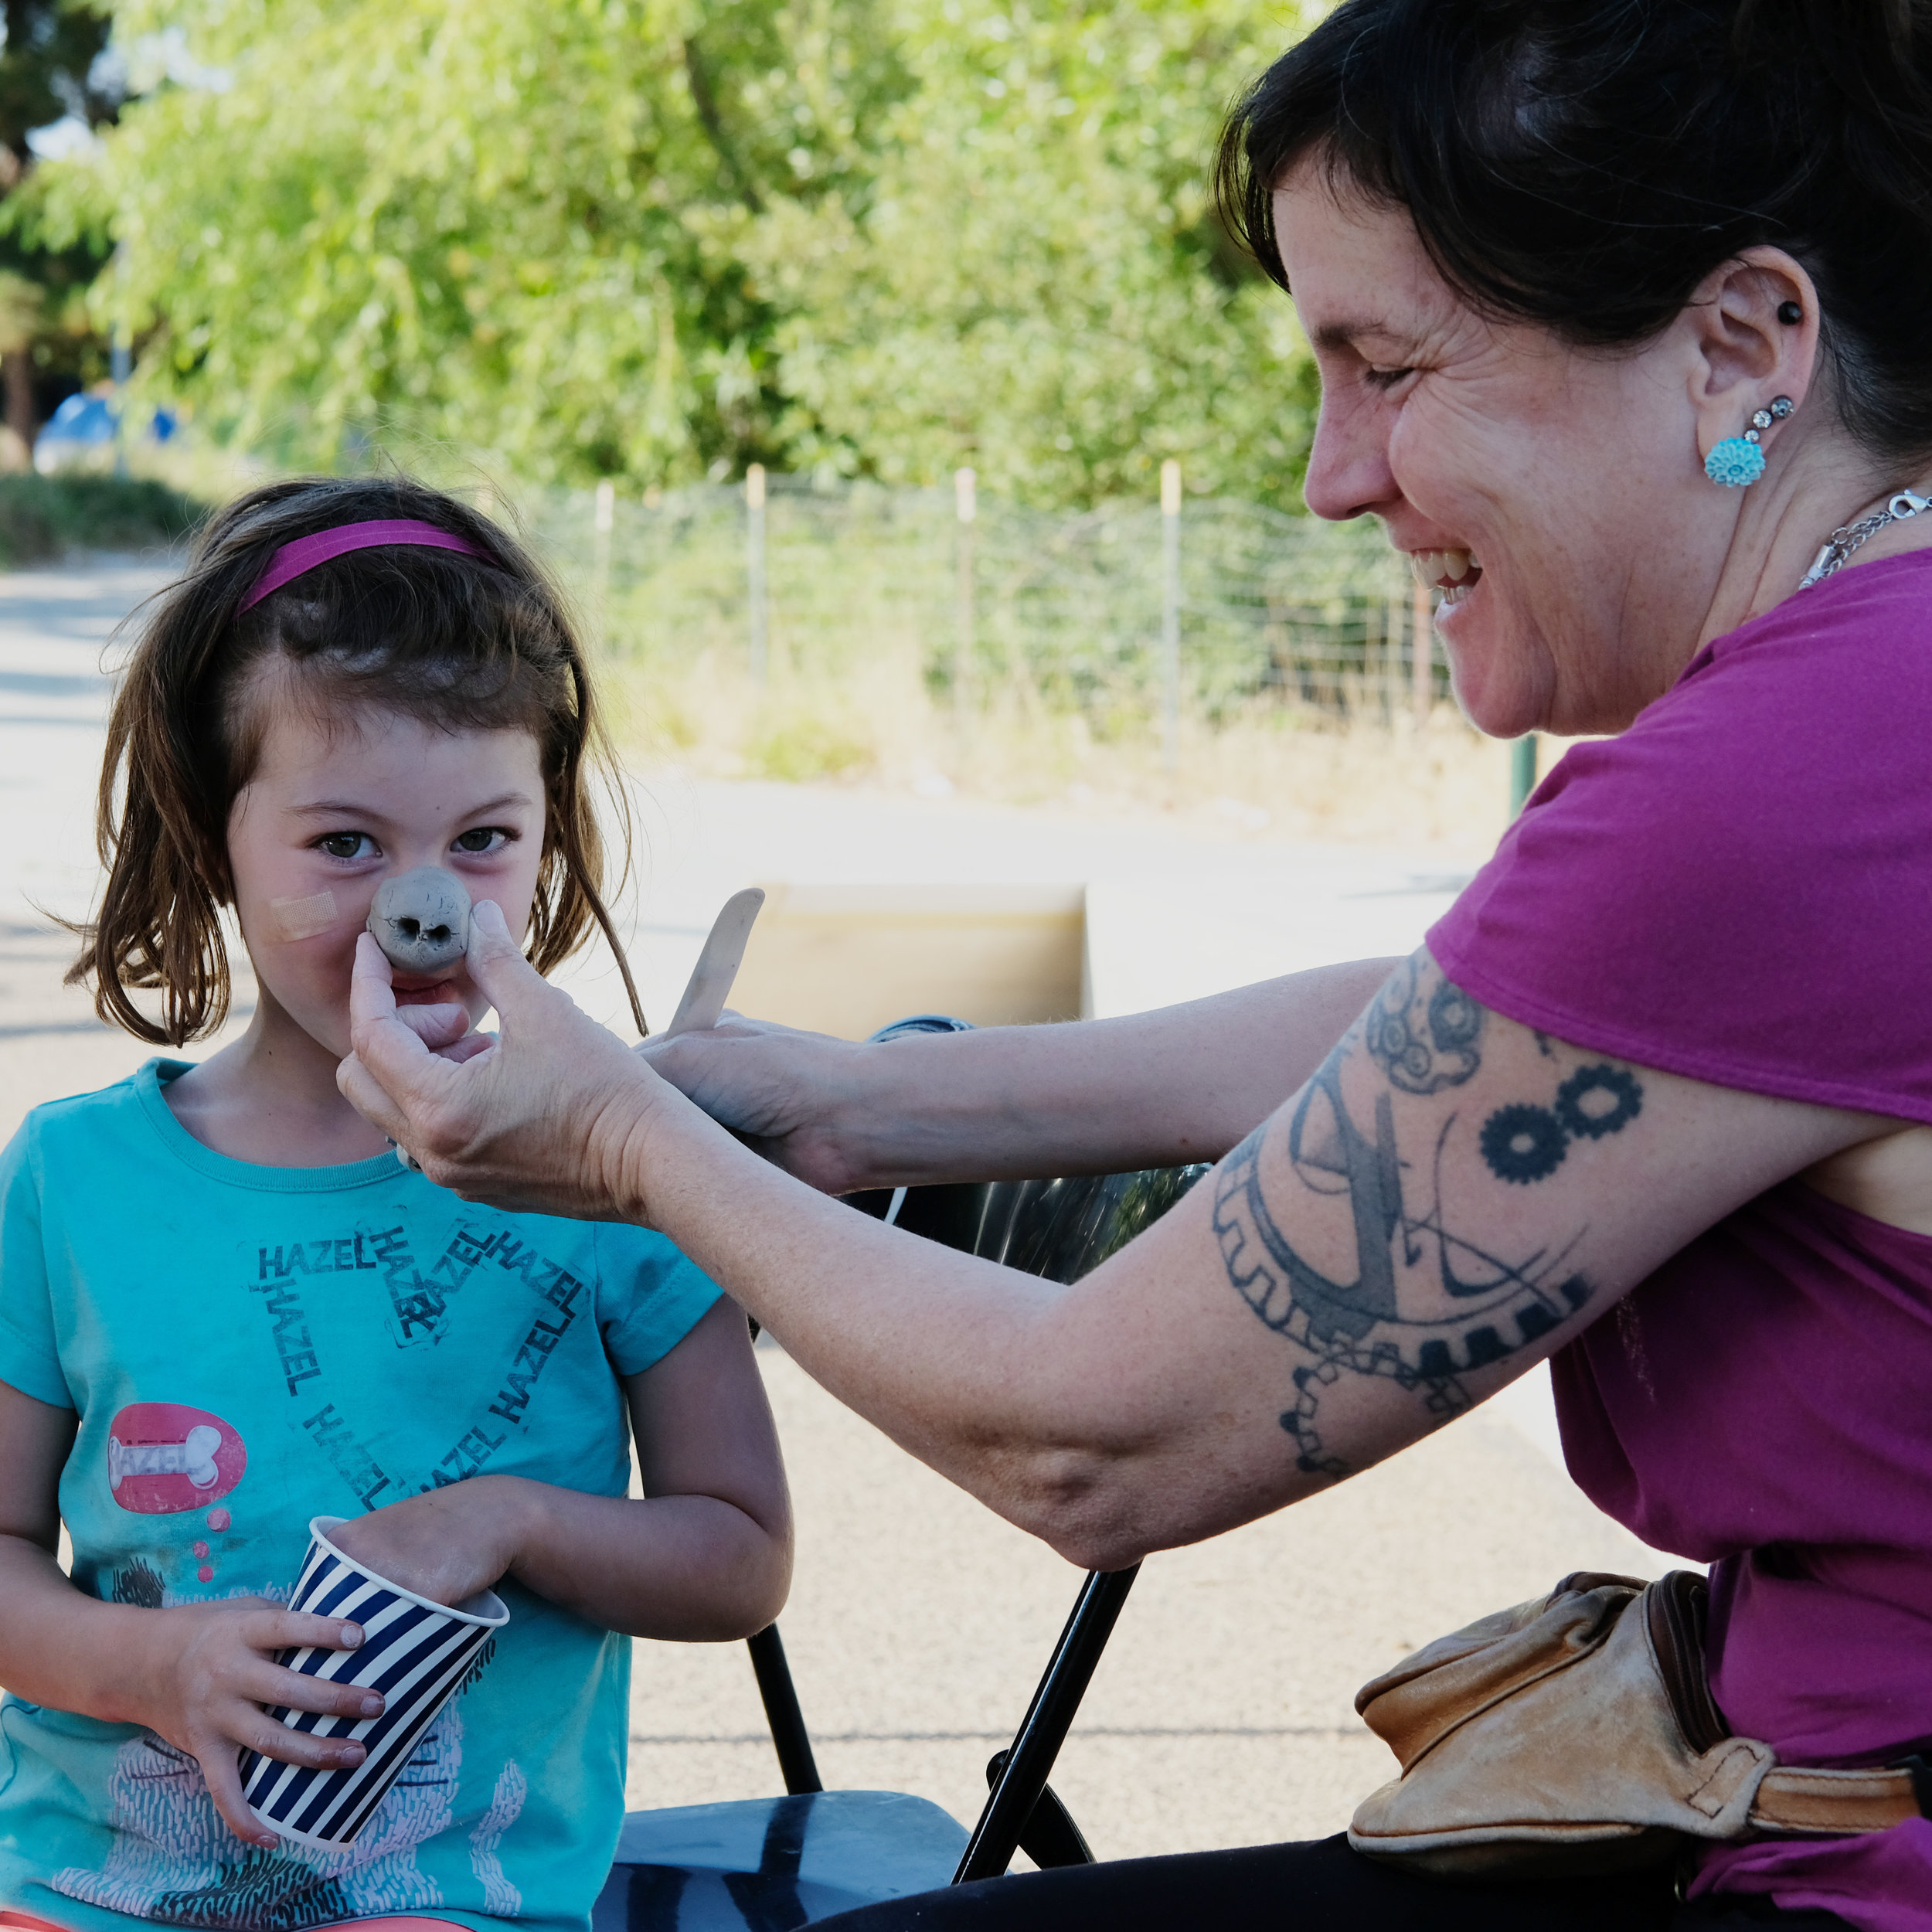 Cups and Clay workshop, led by Emma Spertus at Peralta Park, Oakland